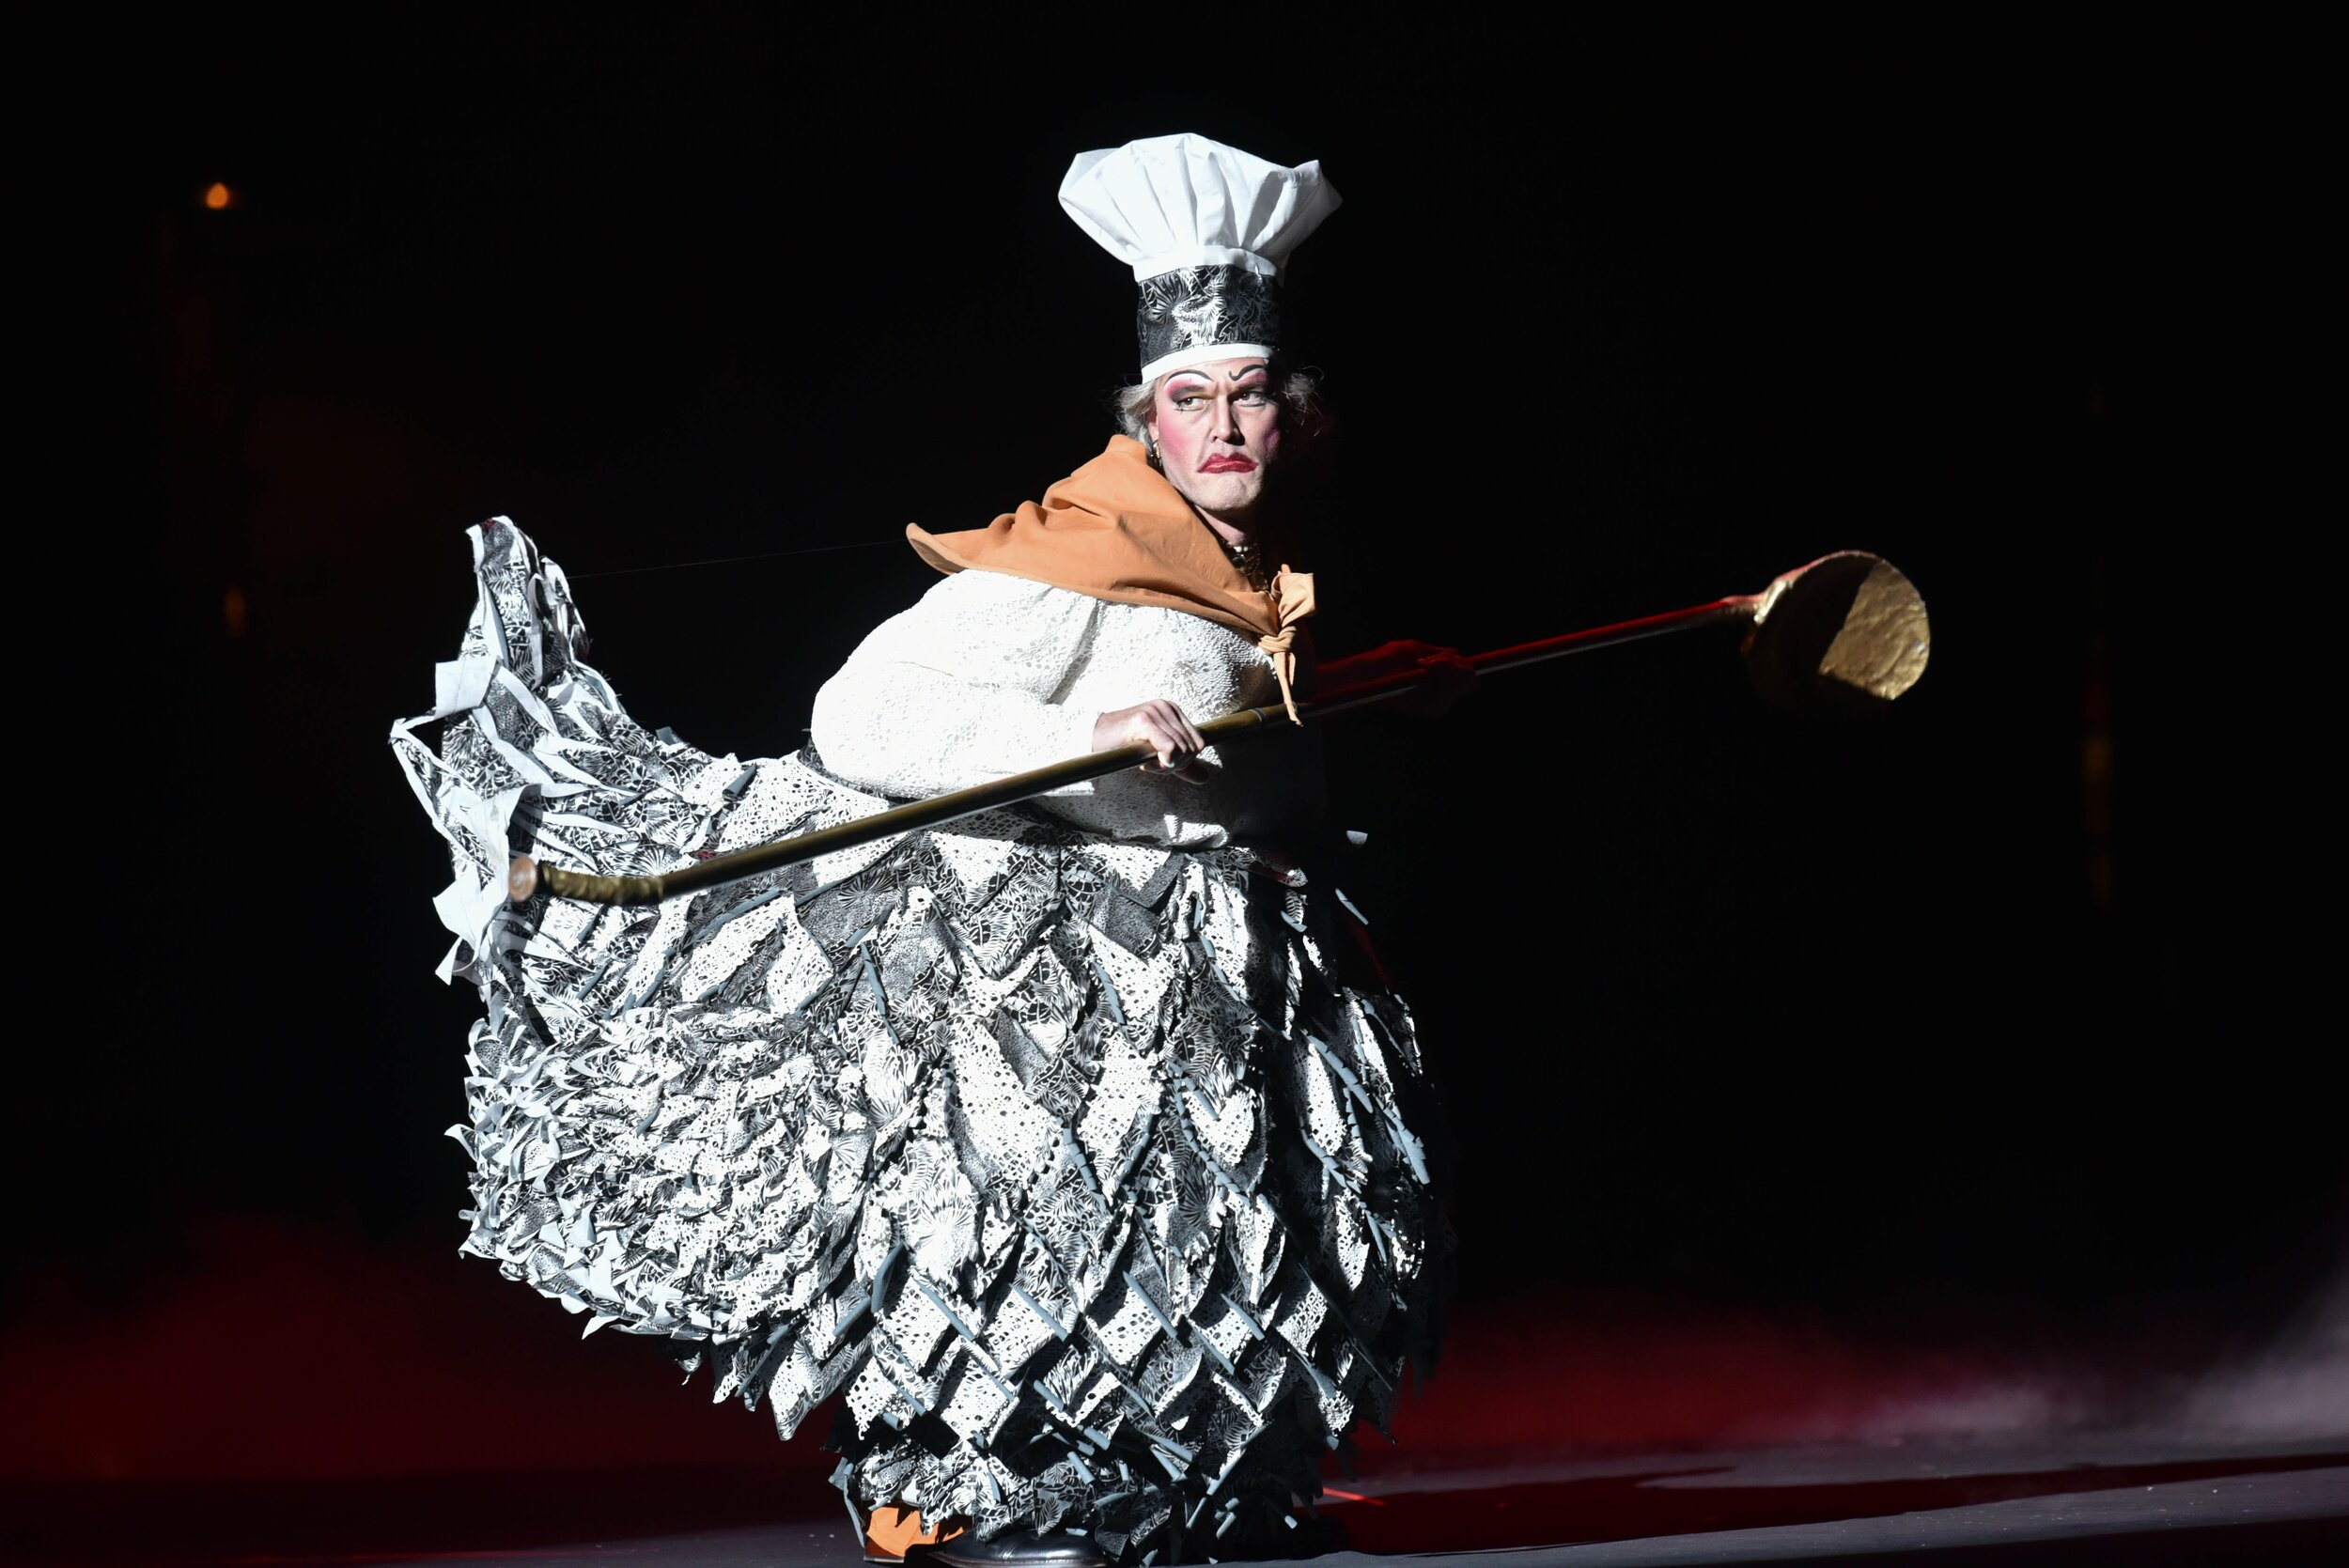 The Cook played by Zachary James sings softly but carries a big ladle. Photos by Kelly & Massa; courtesy of Opera Philadelphia.